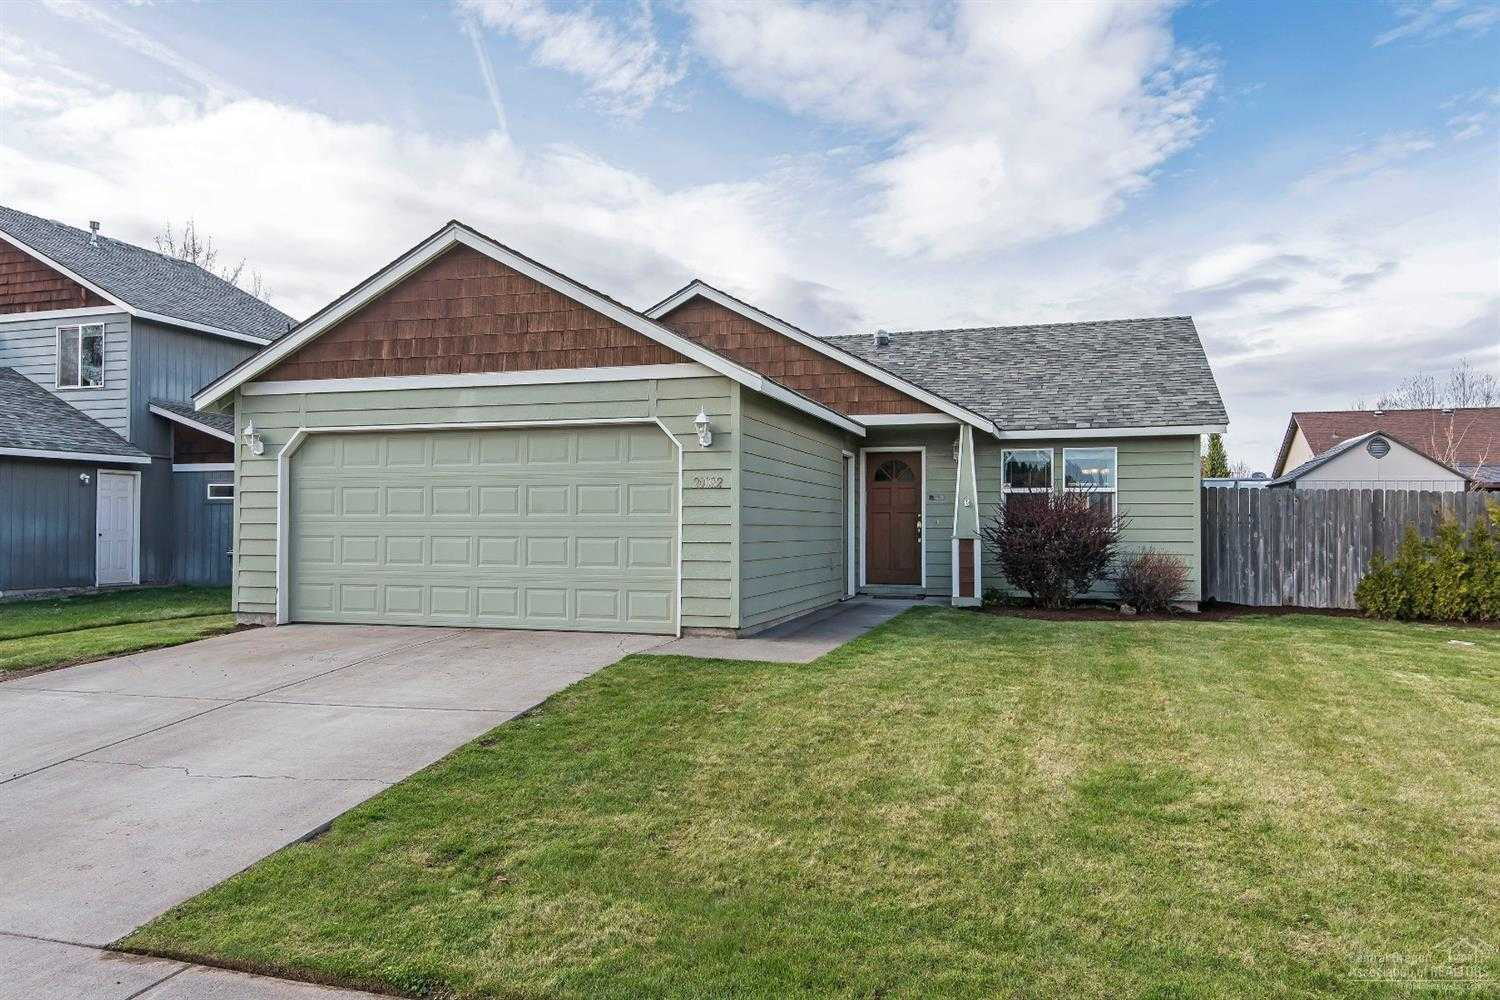 $295,000 - 3Br/2Ba -  for Sale in Bend